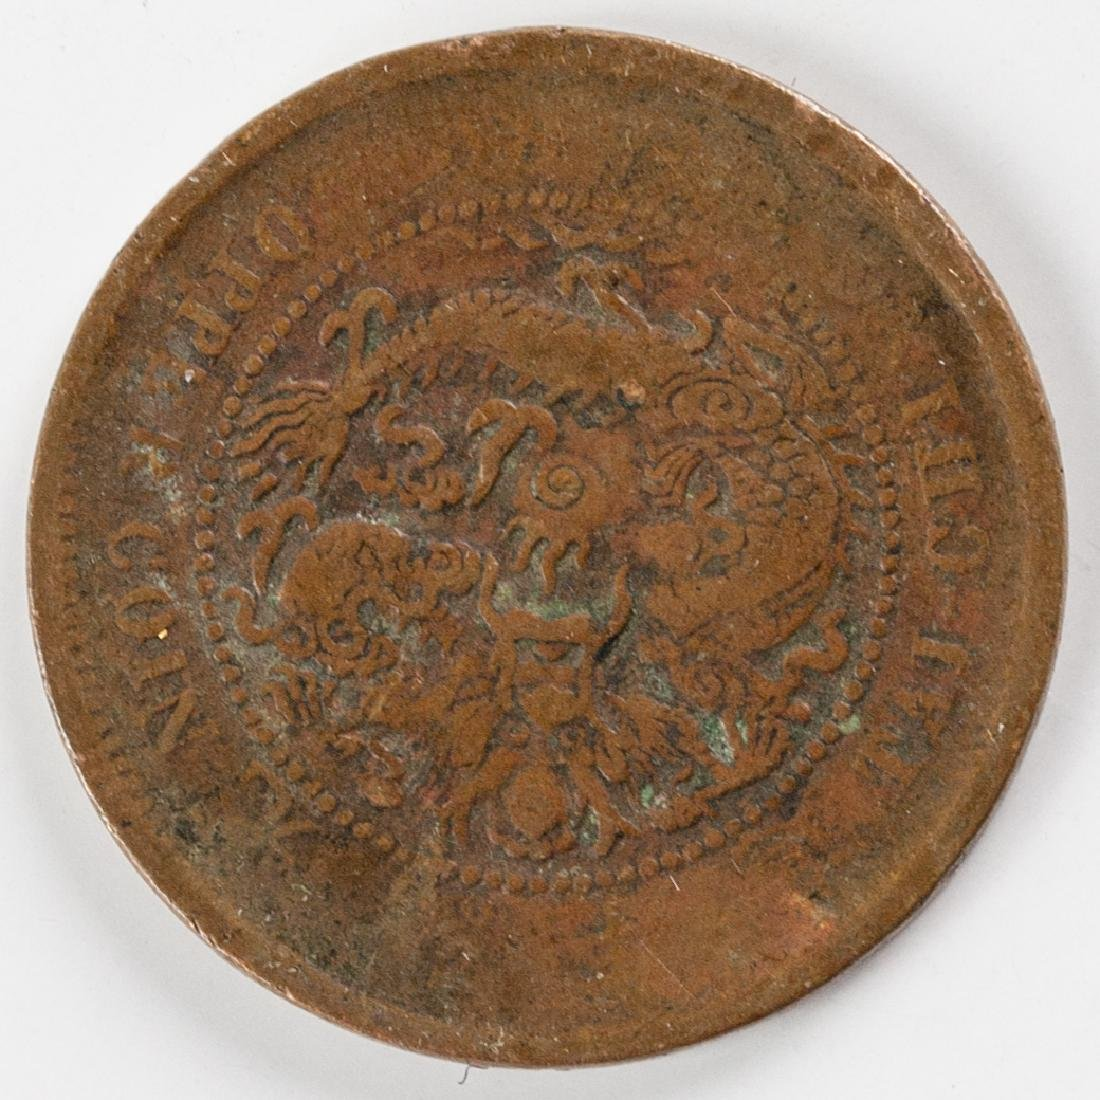 1906 China Hubei 10 Cash Copper Coin Y-10J.5